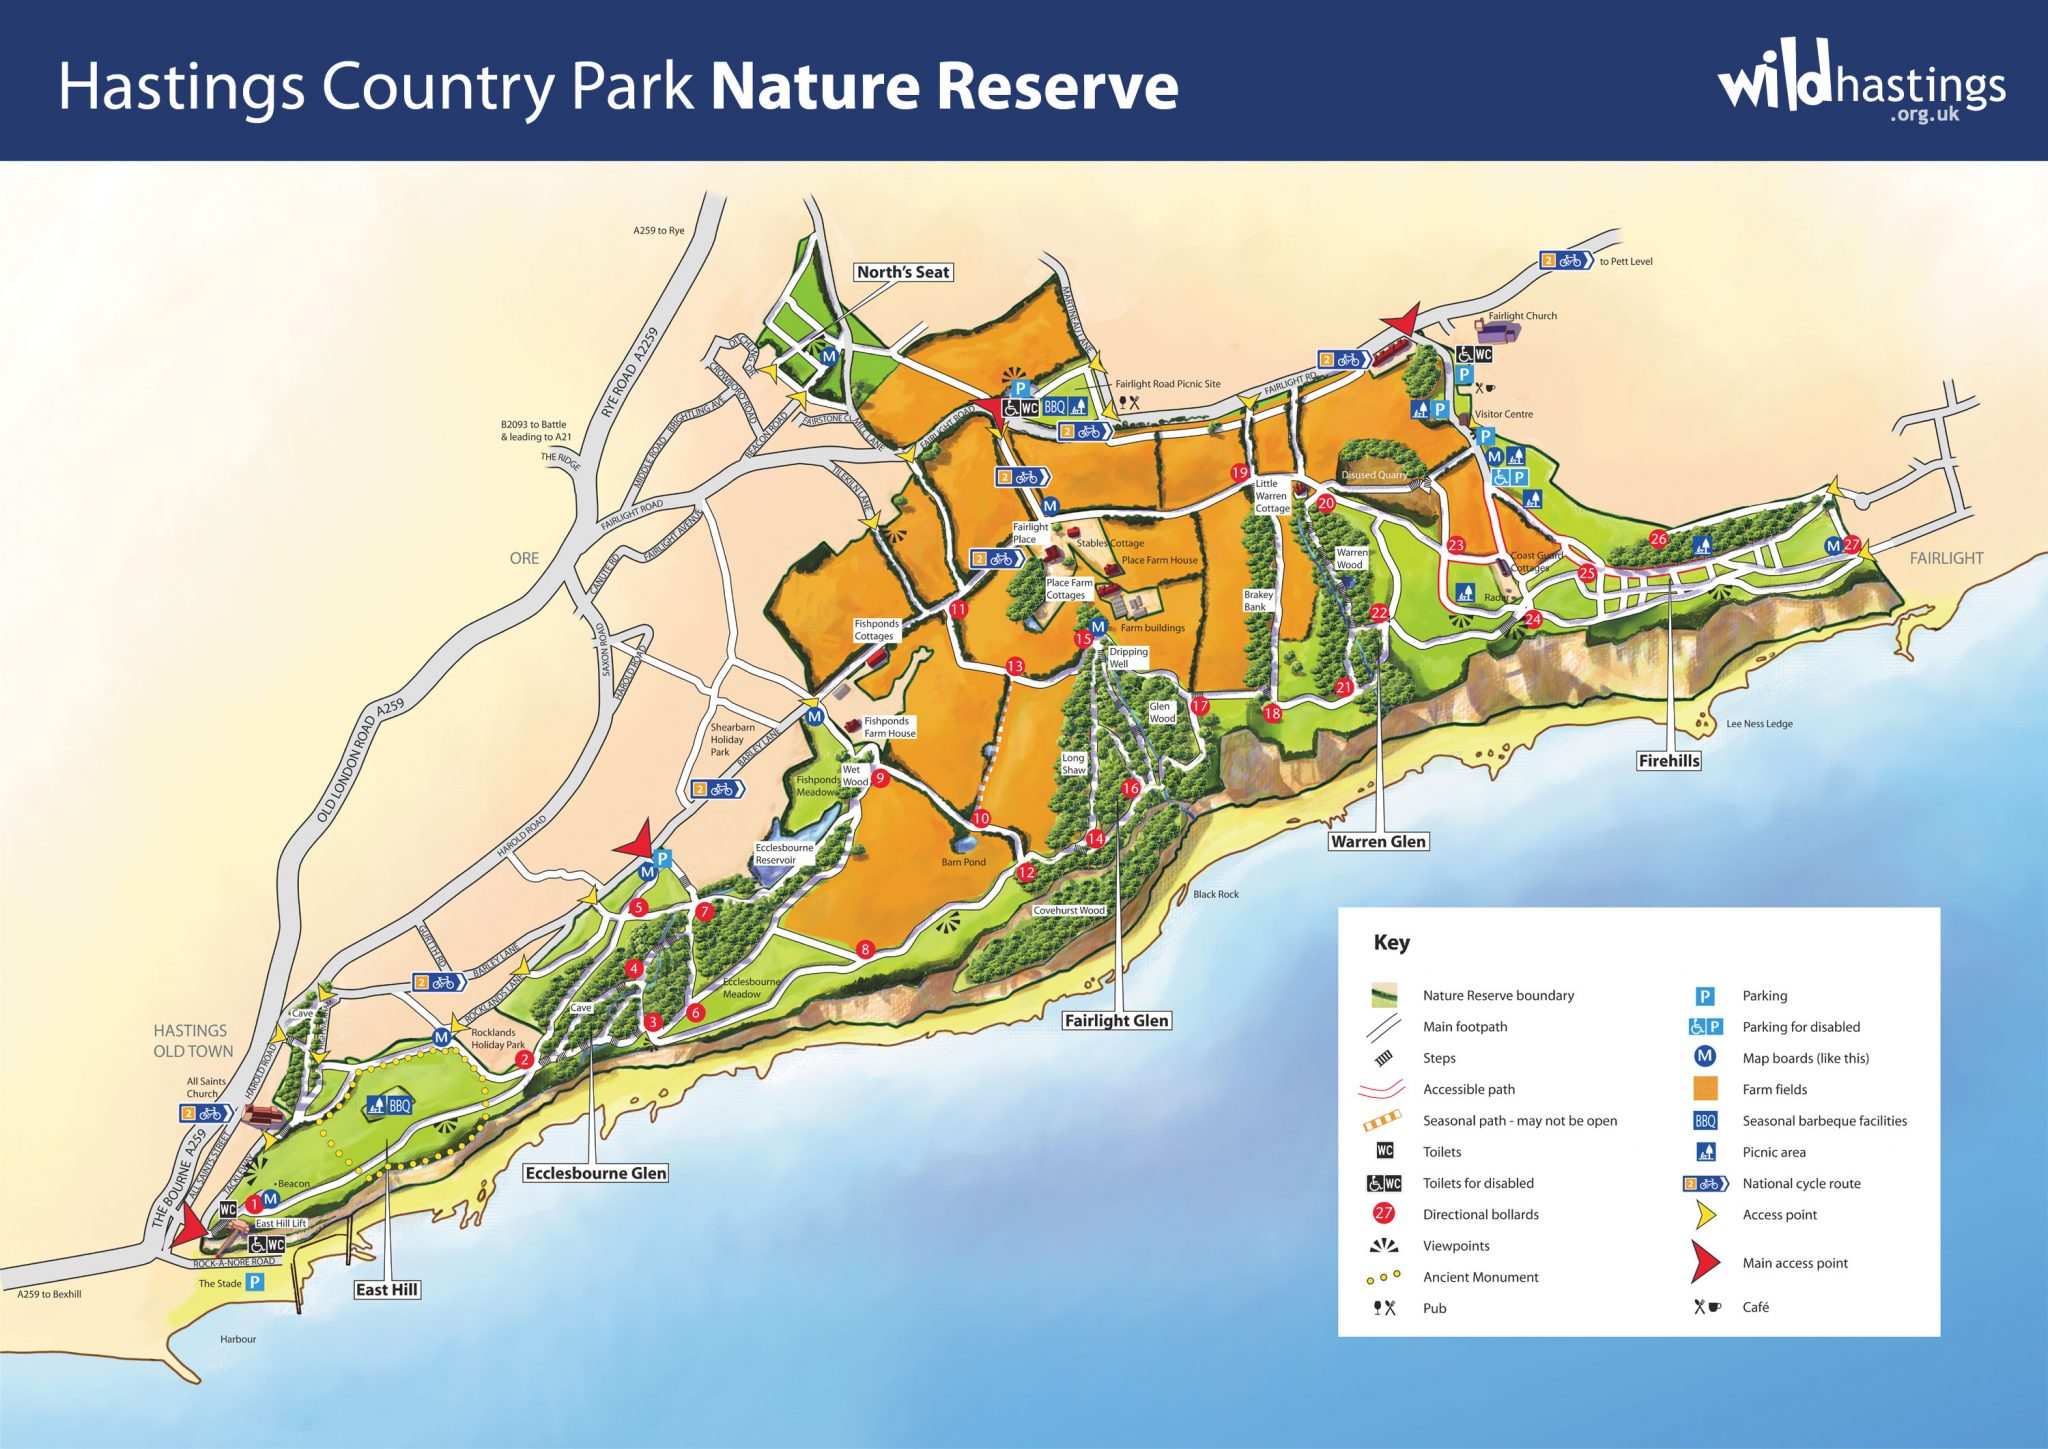 A map of Hastings Country Park